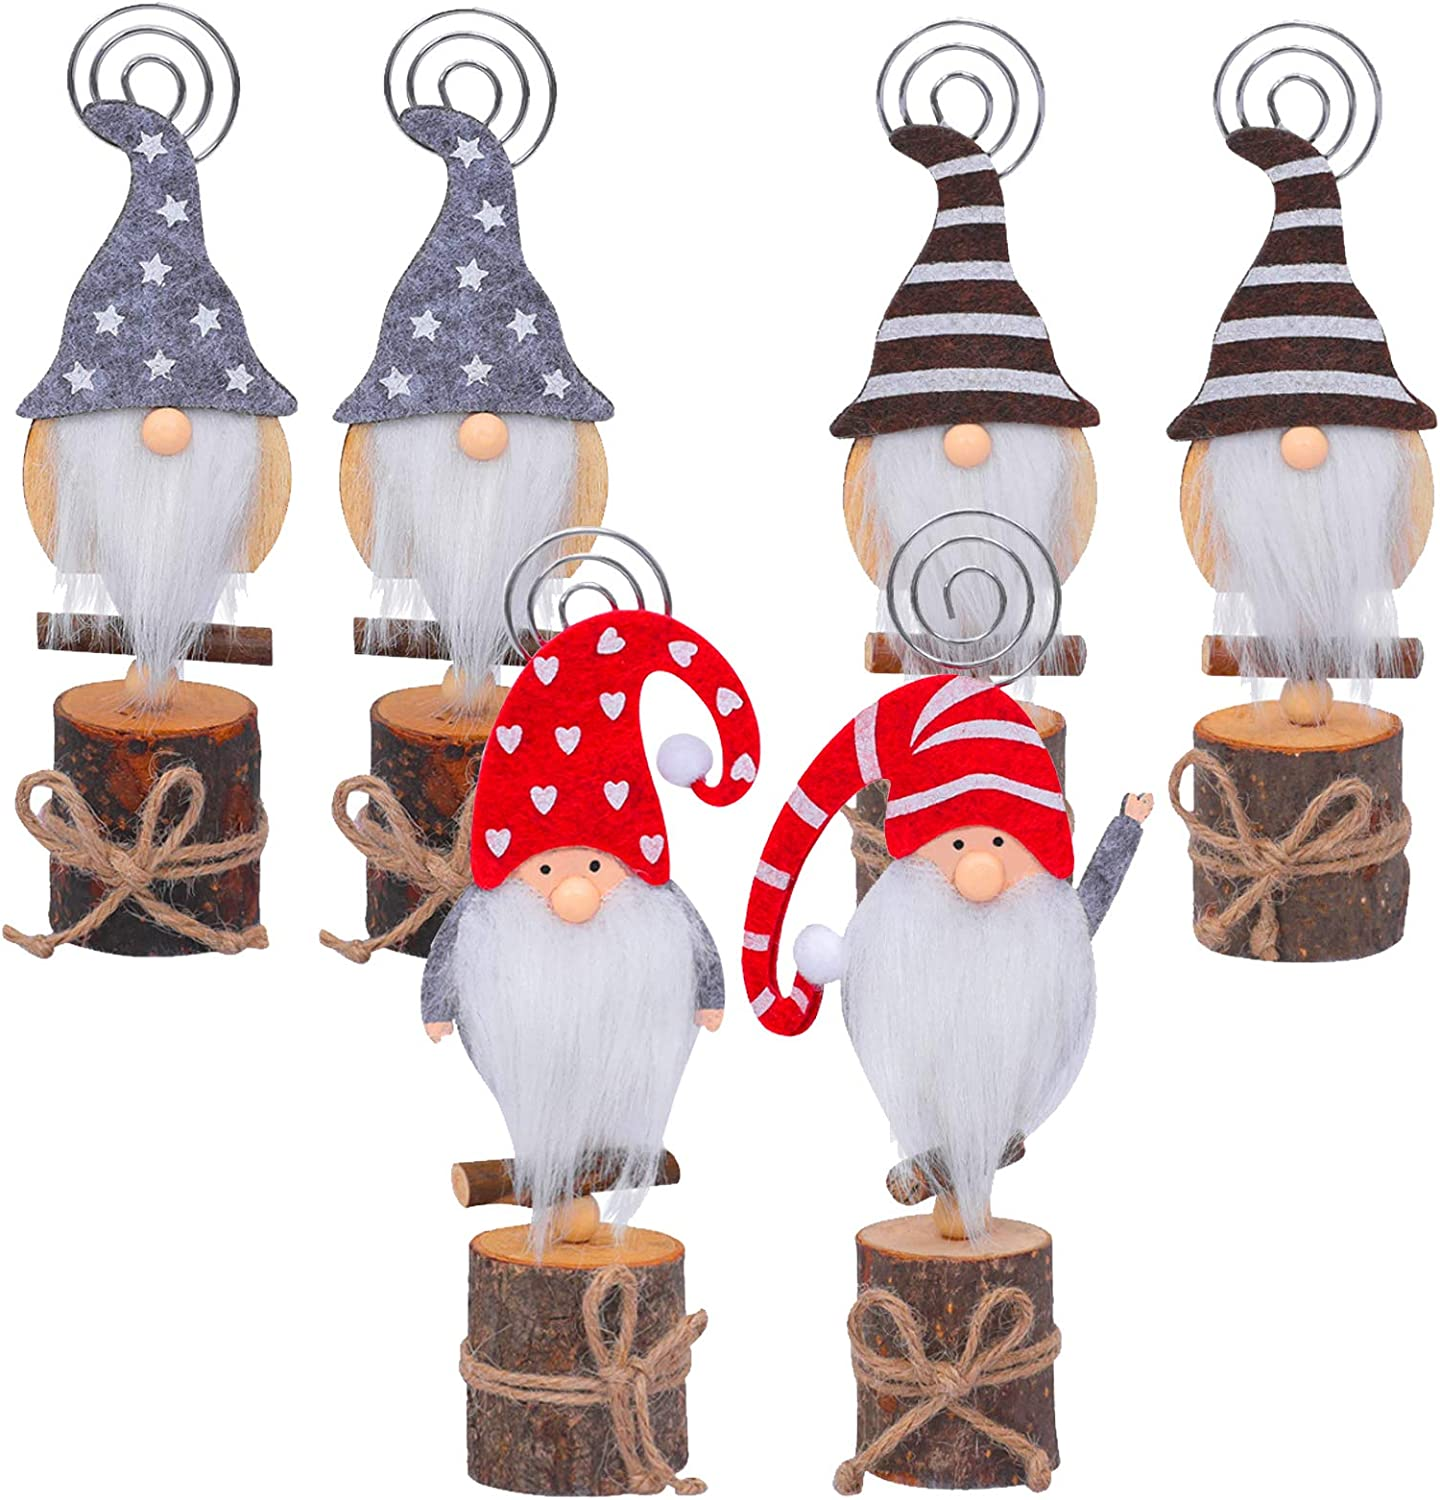 Set of 6 Christmas Swedish Tomte Card Holders- Xmas Plush Gnome Dolls Table Photo Holder in 4 Styles Wood Based Cartoon Clips for Memo Card Photo Xmas Table Display Deors Christmas Holiday Centerpiece: Home & Kitchen